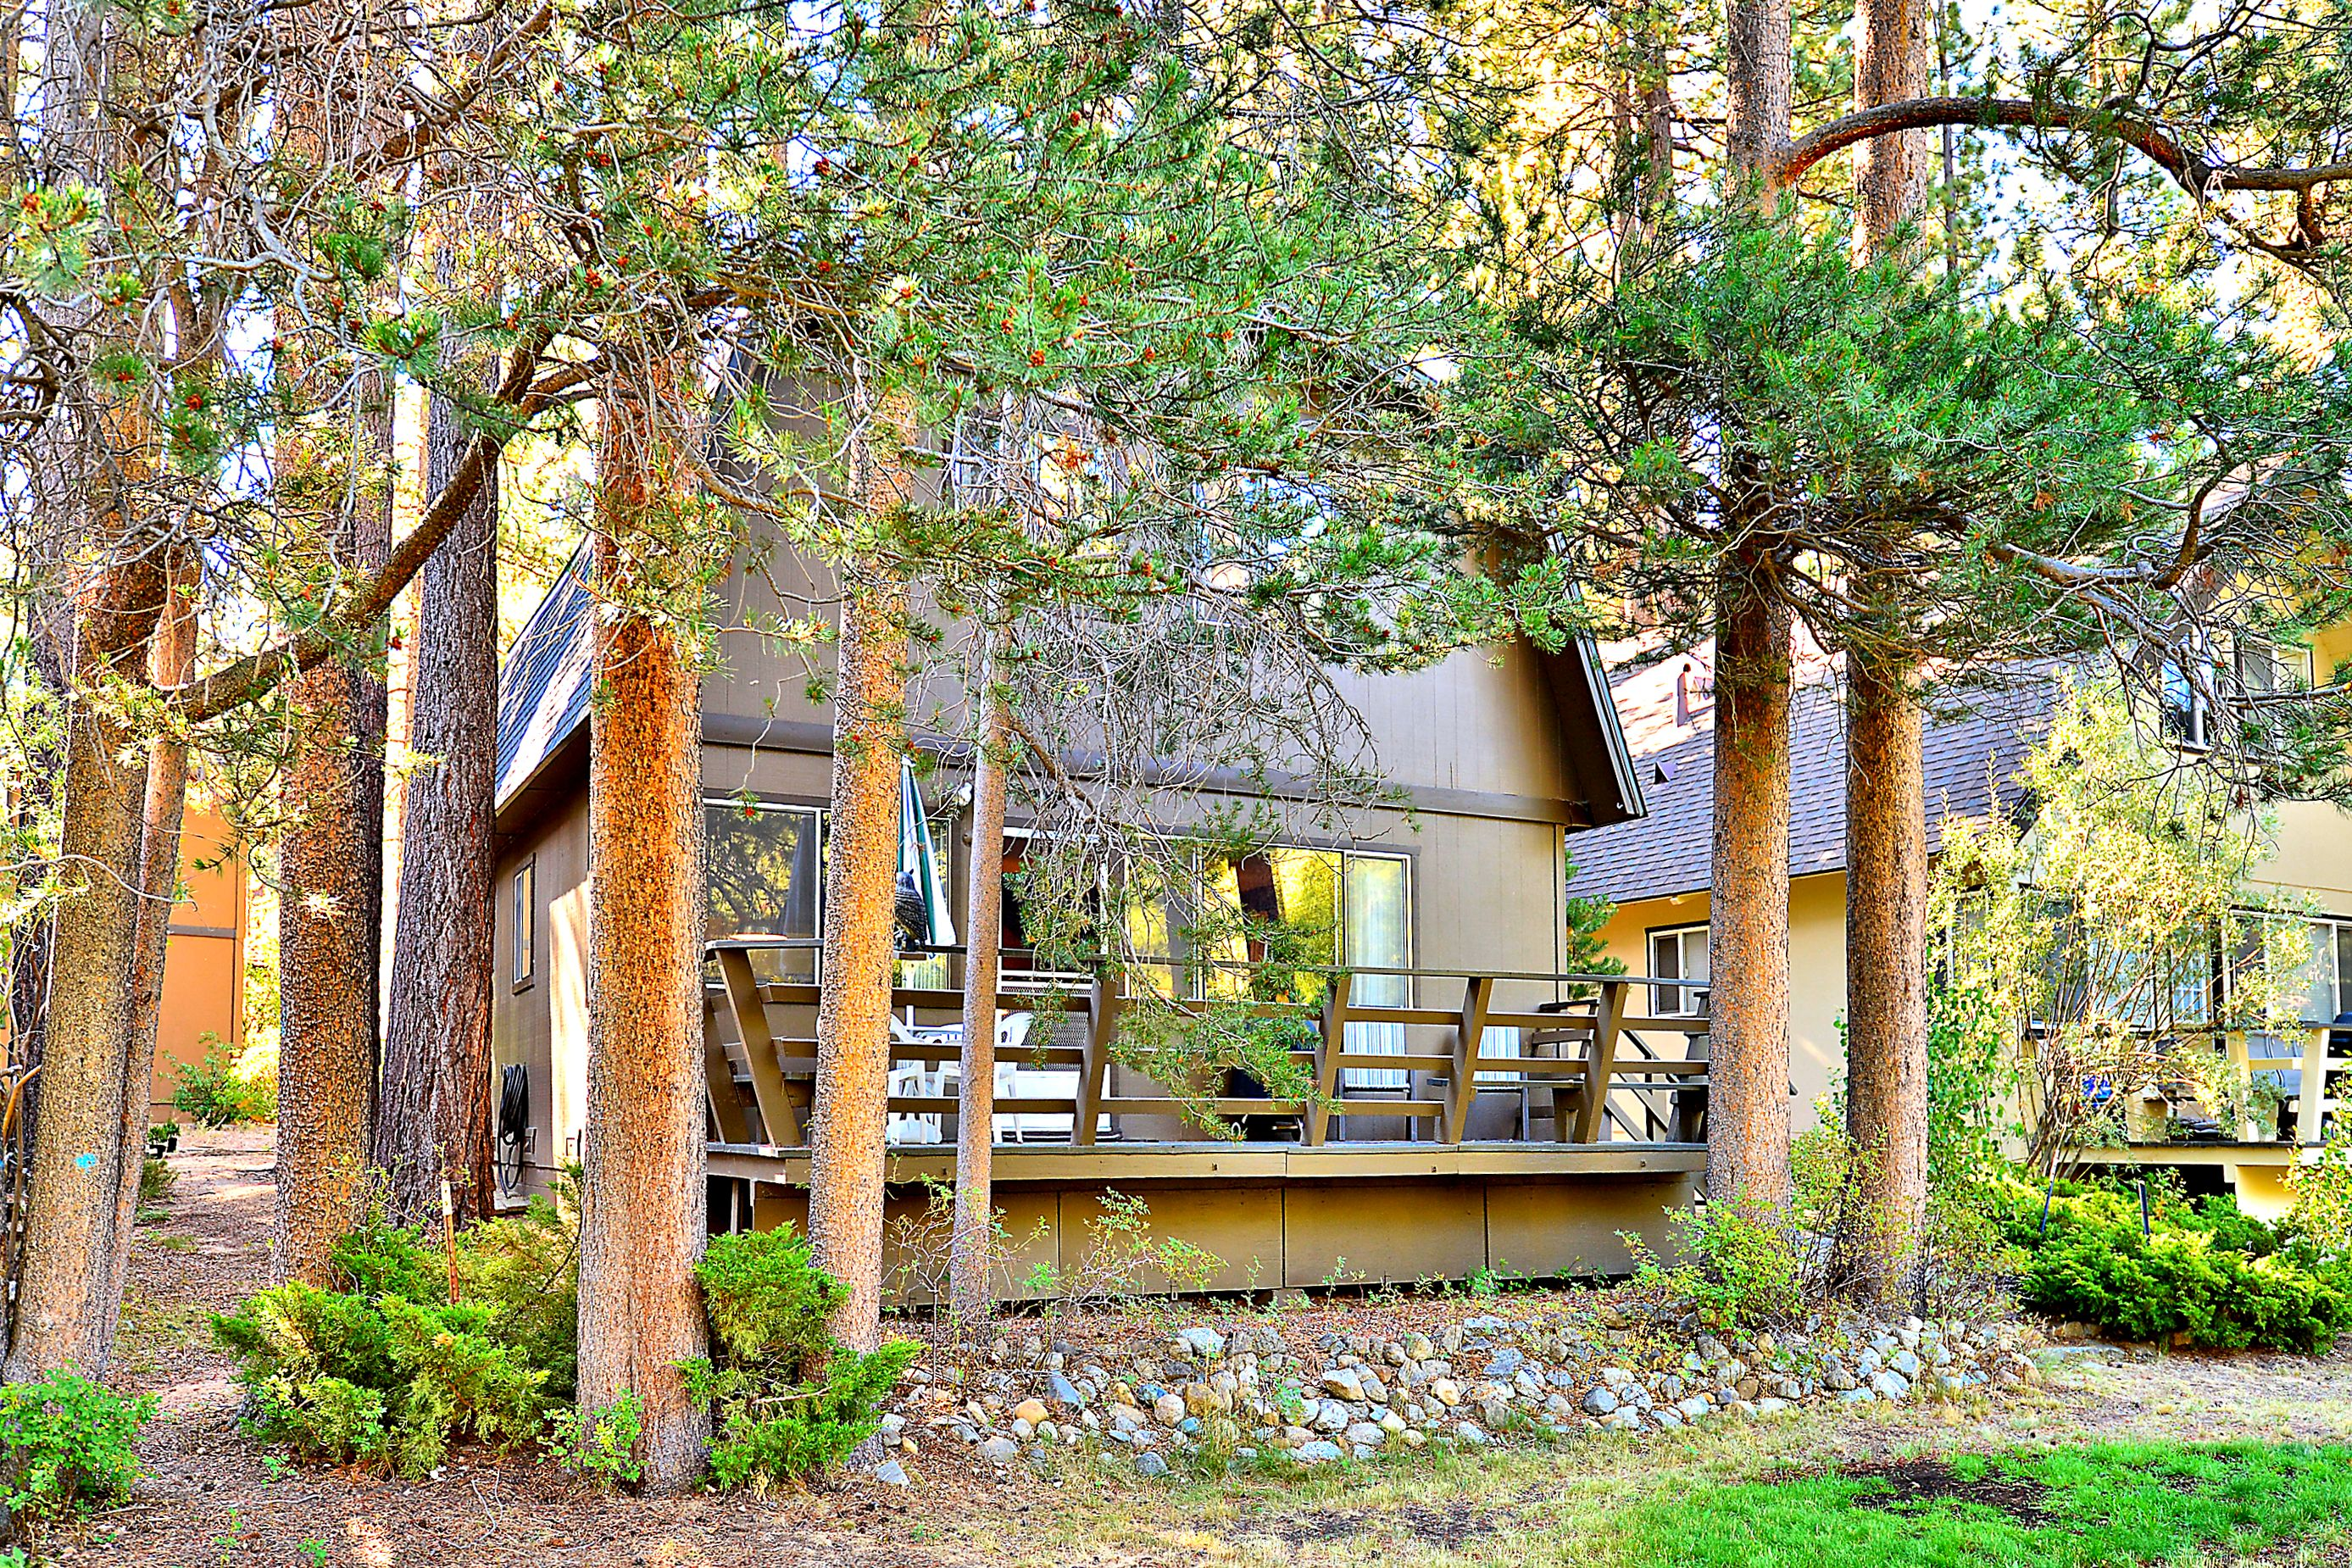 luxury of lake photo vacation cabins holiday in buckingham your july south shore our tahoe sandy cabin spend many blog